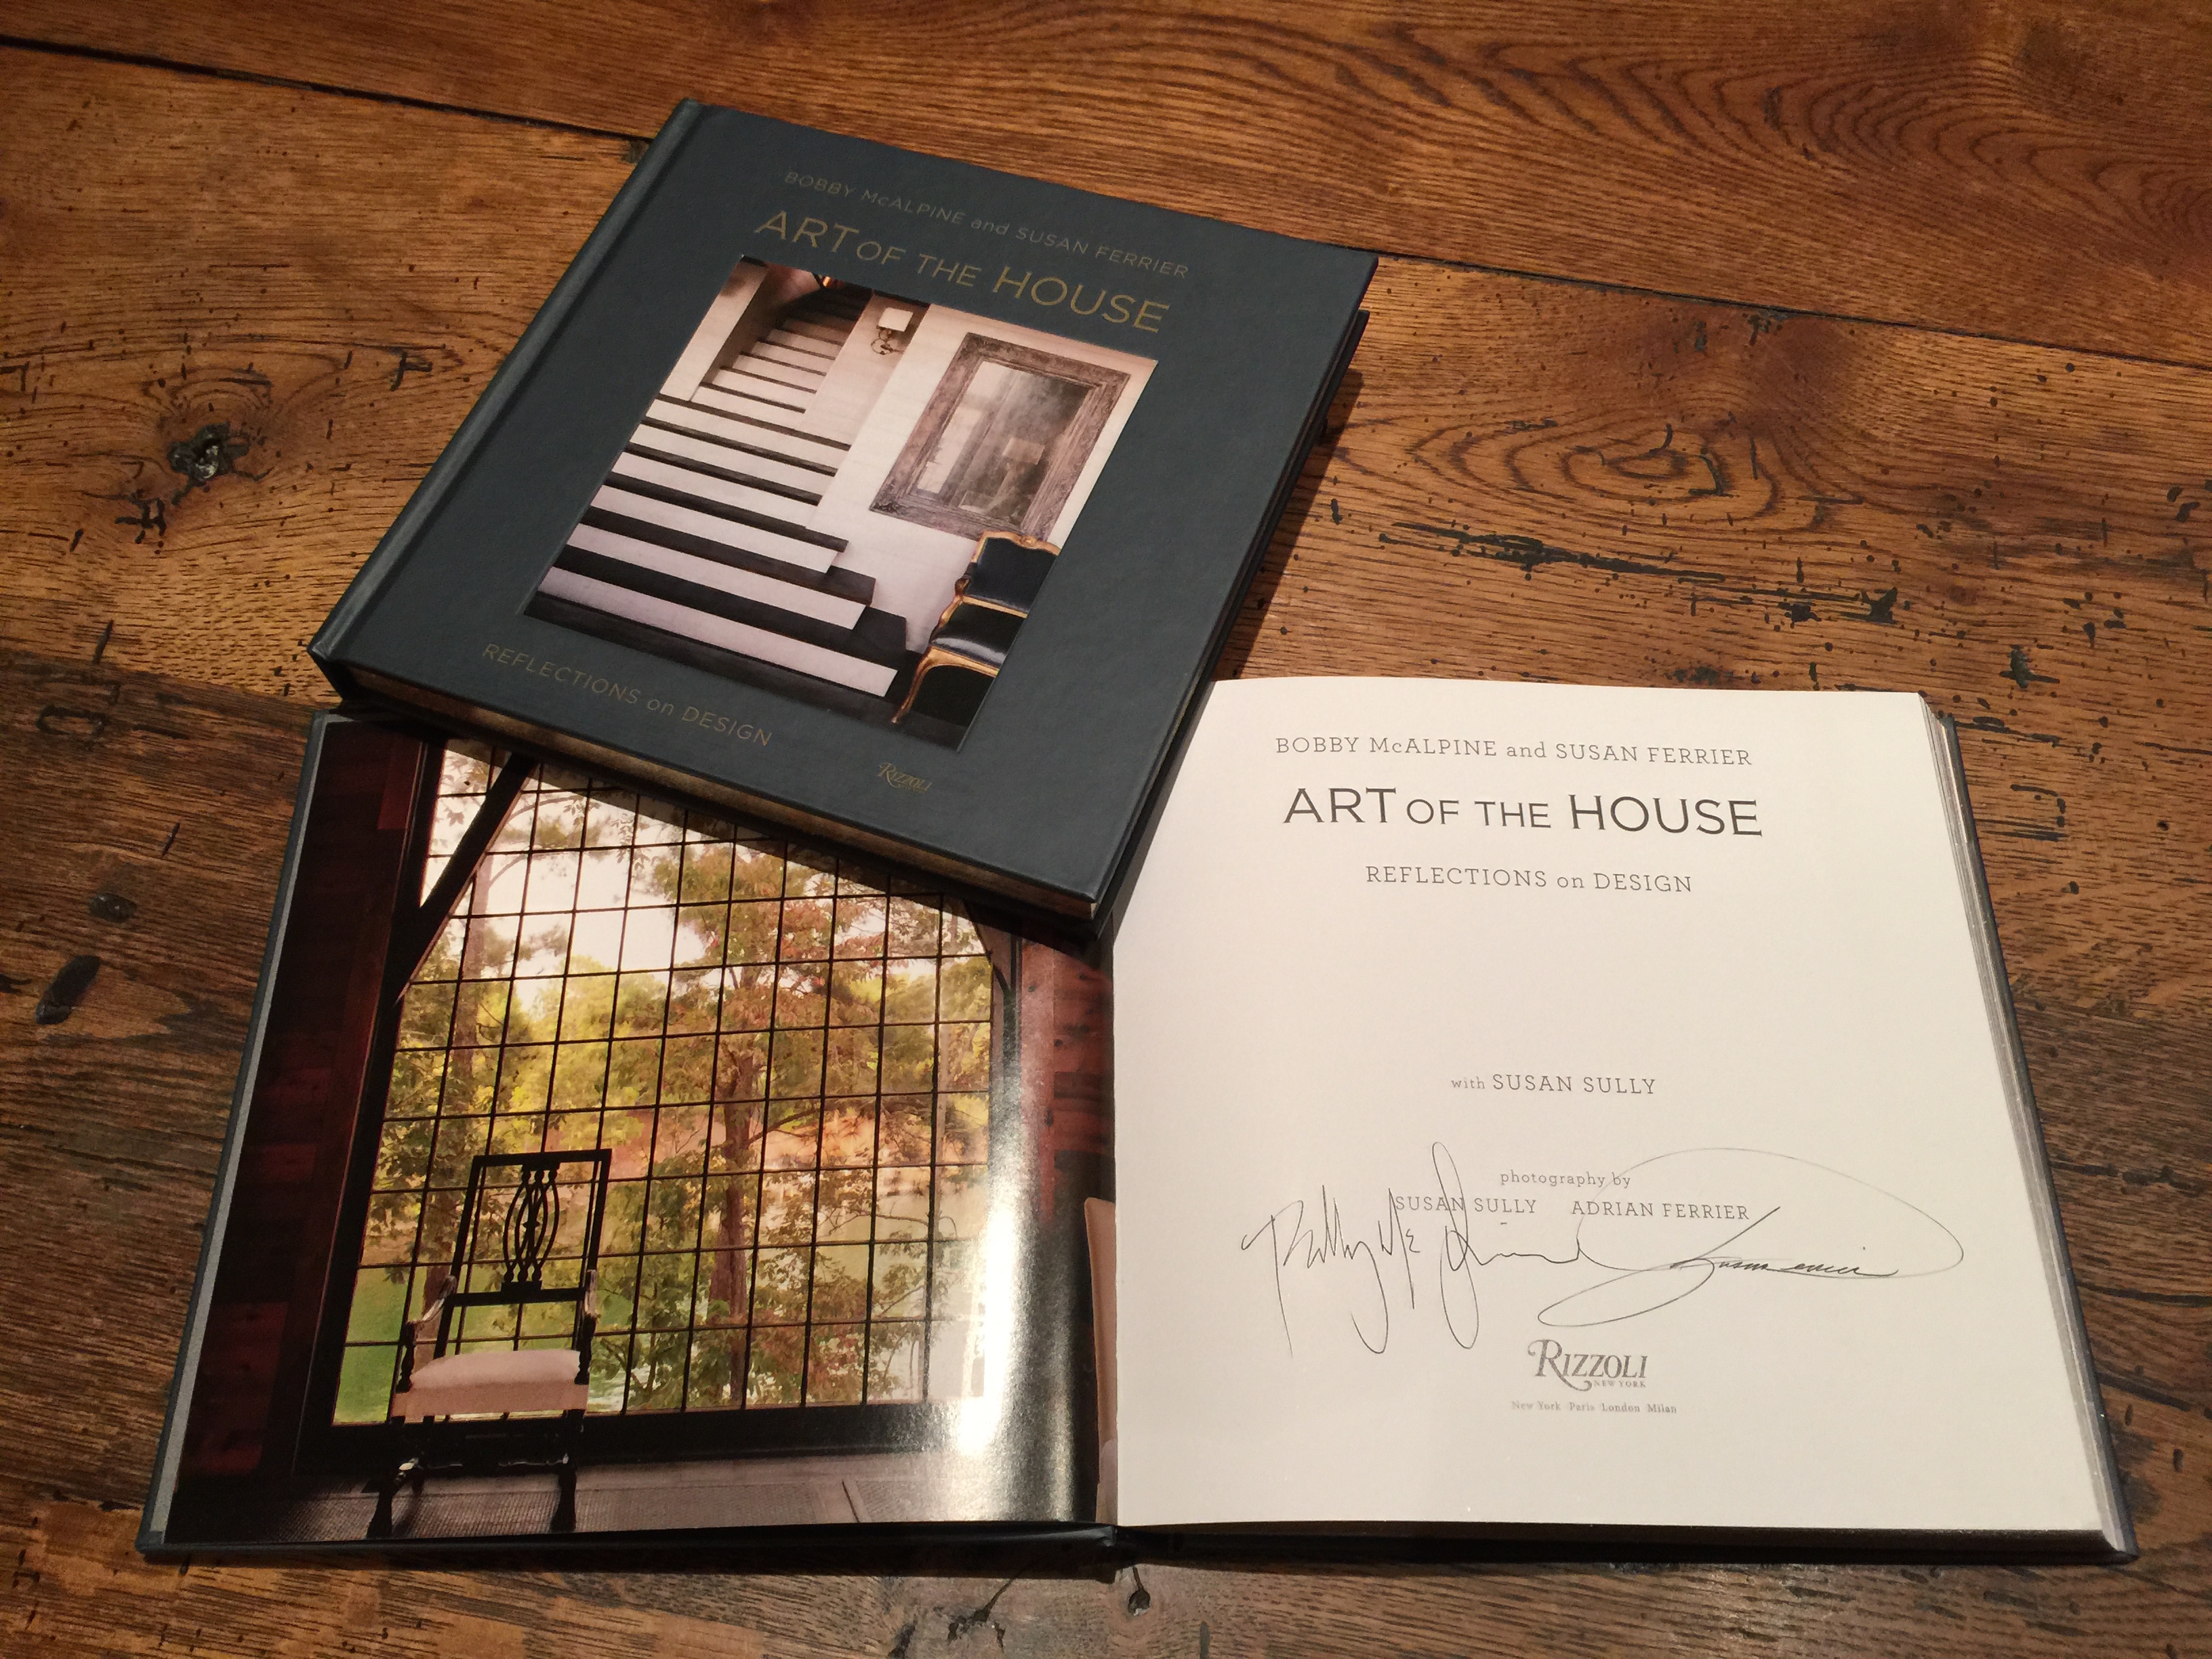 McAlpine Journal: Art of the House